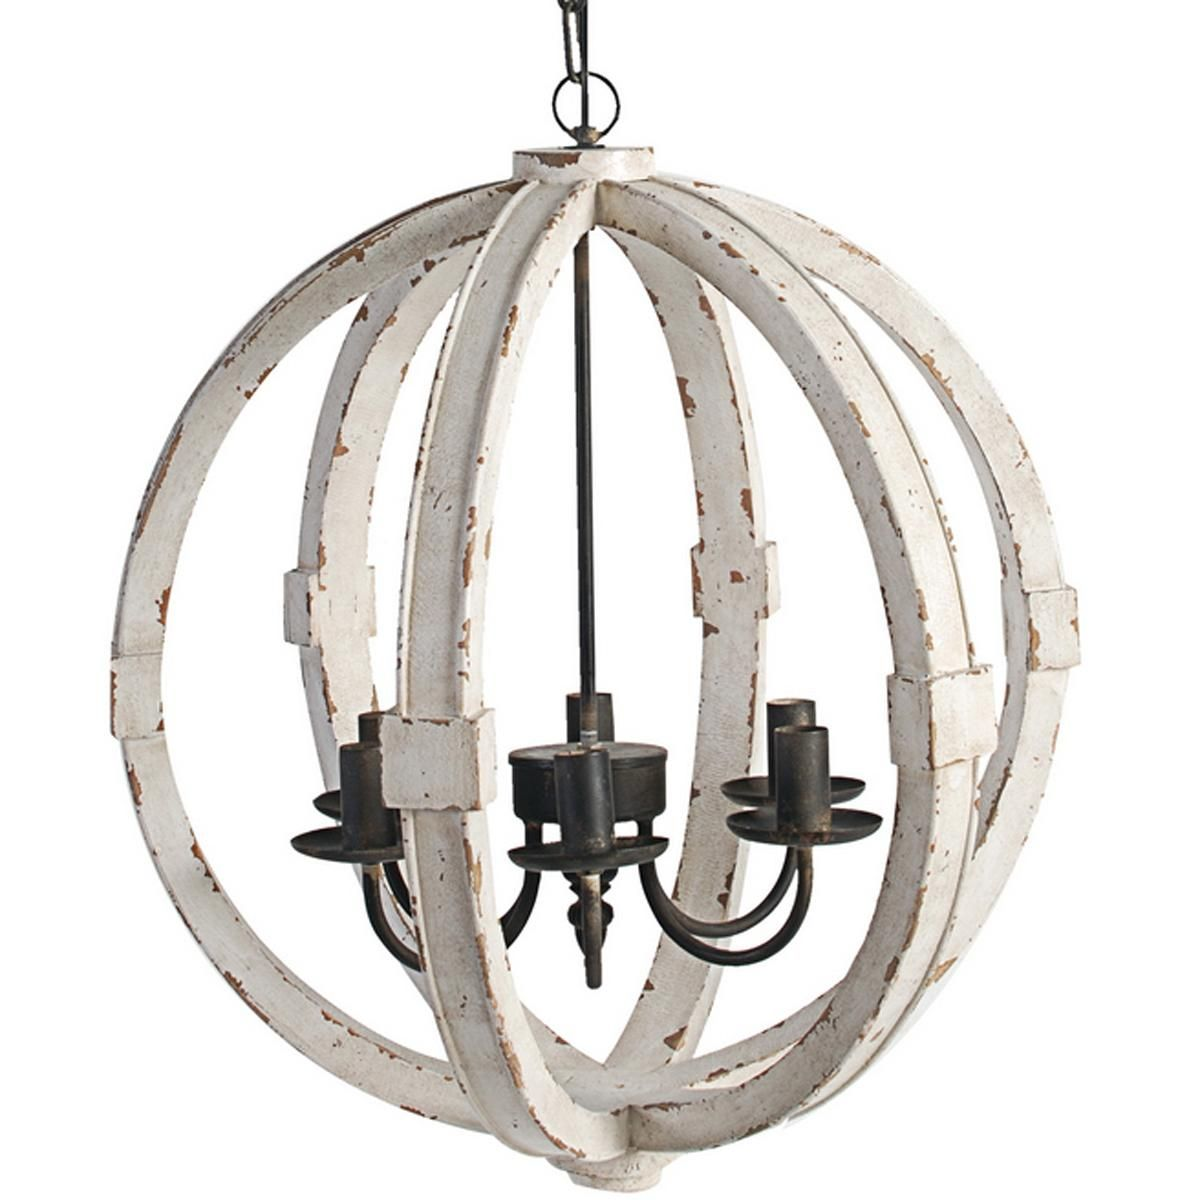 White Washed Wood Sphere Chandelier - Dining Room